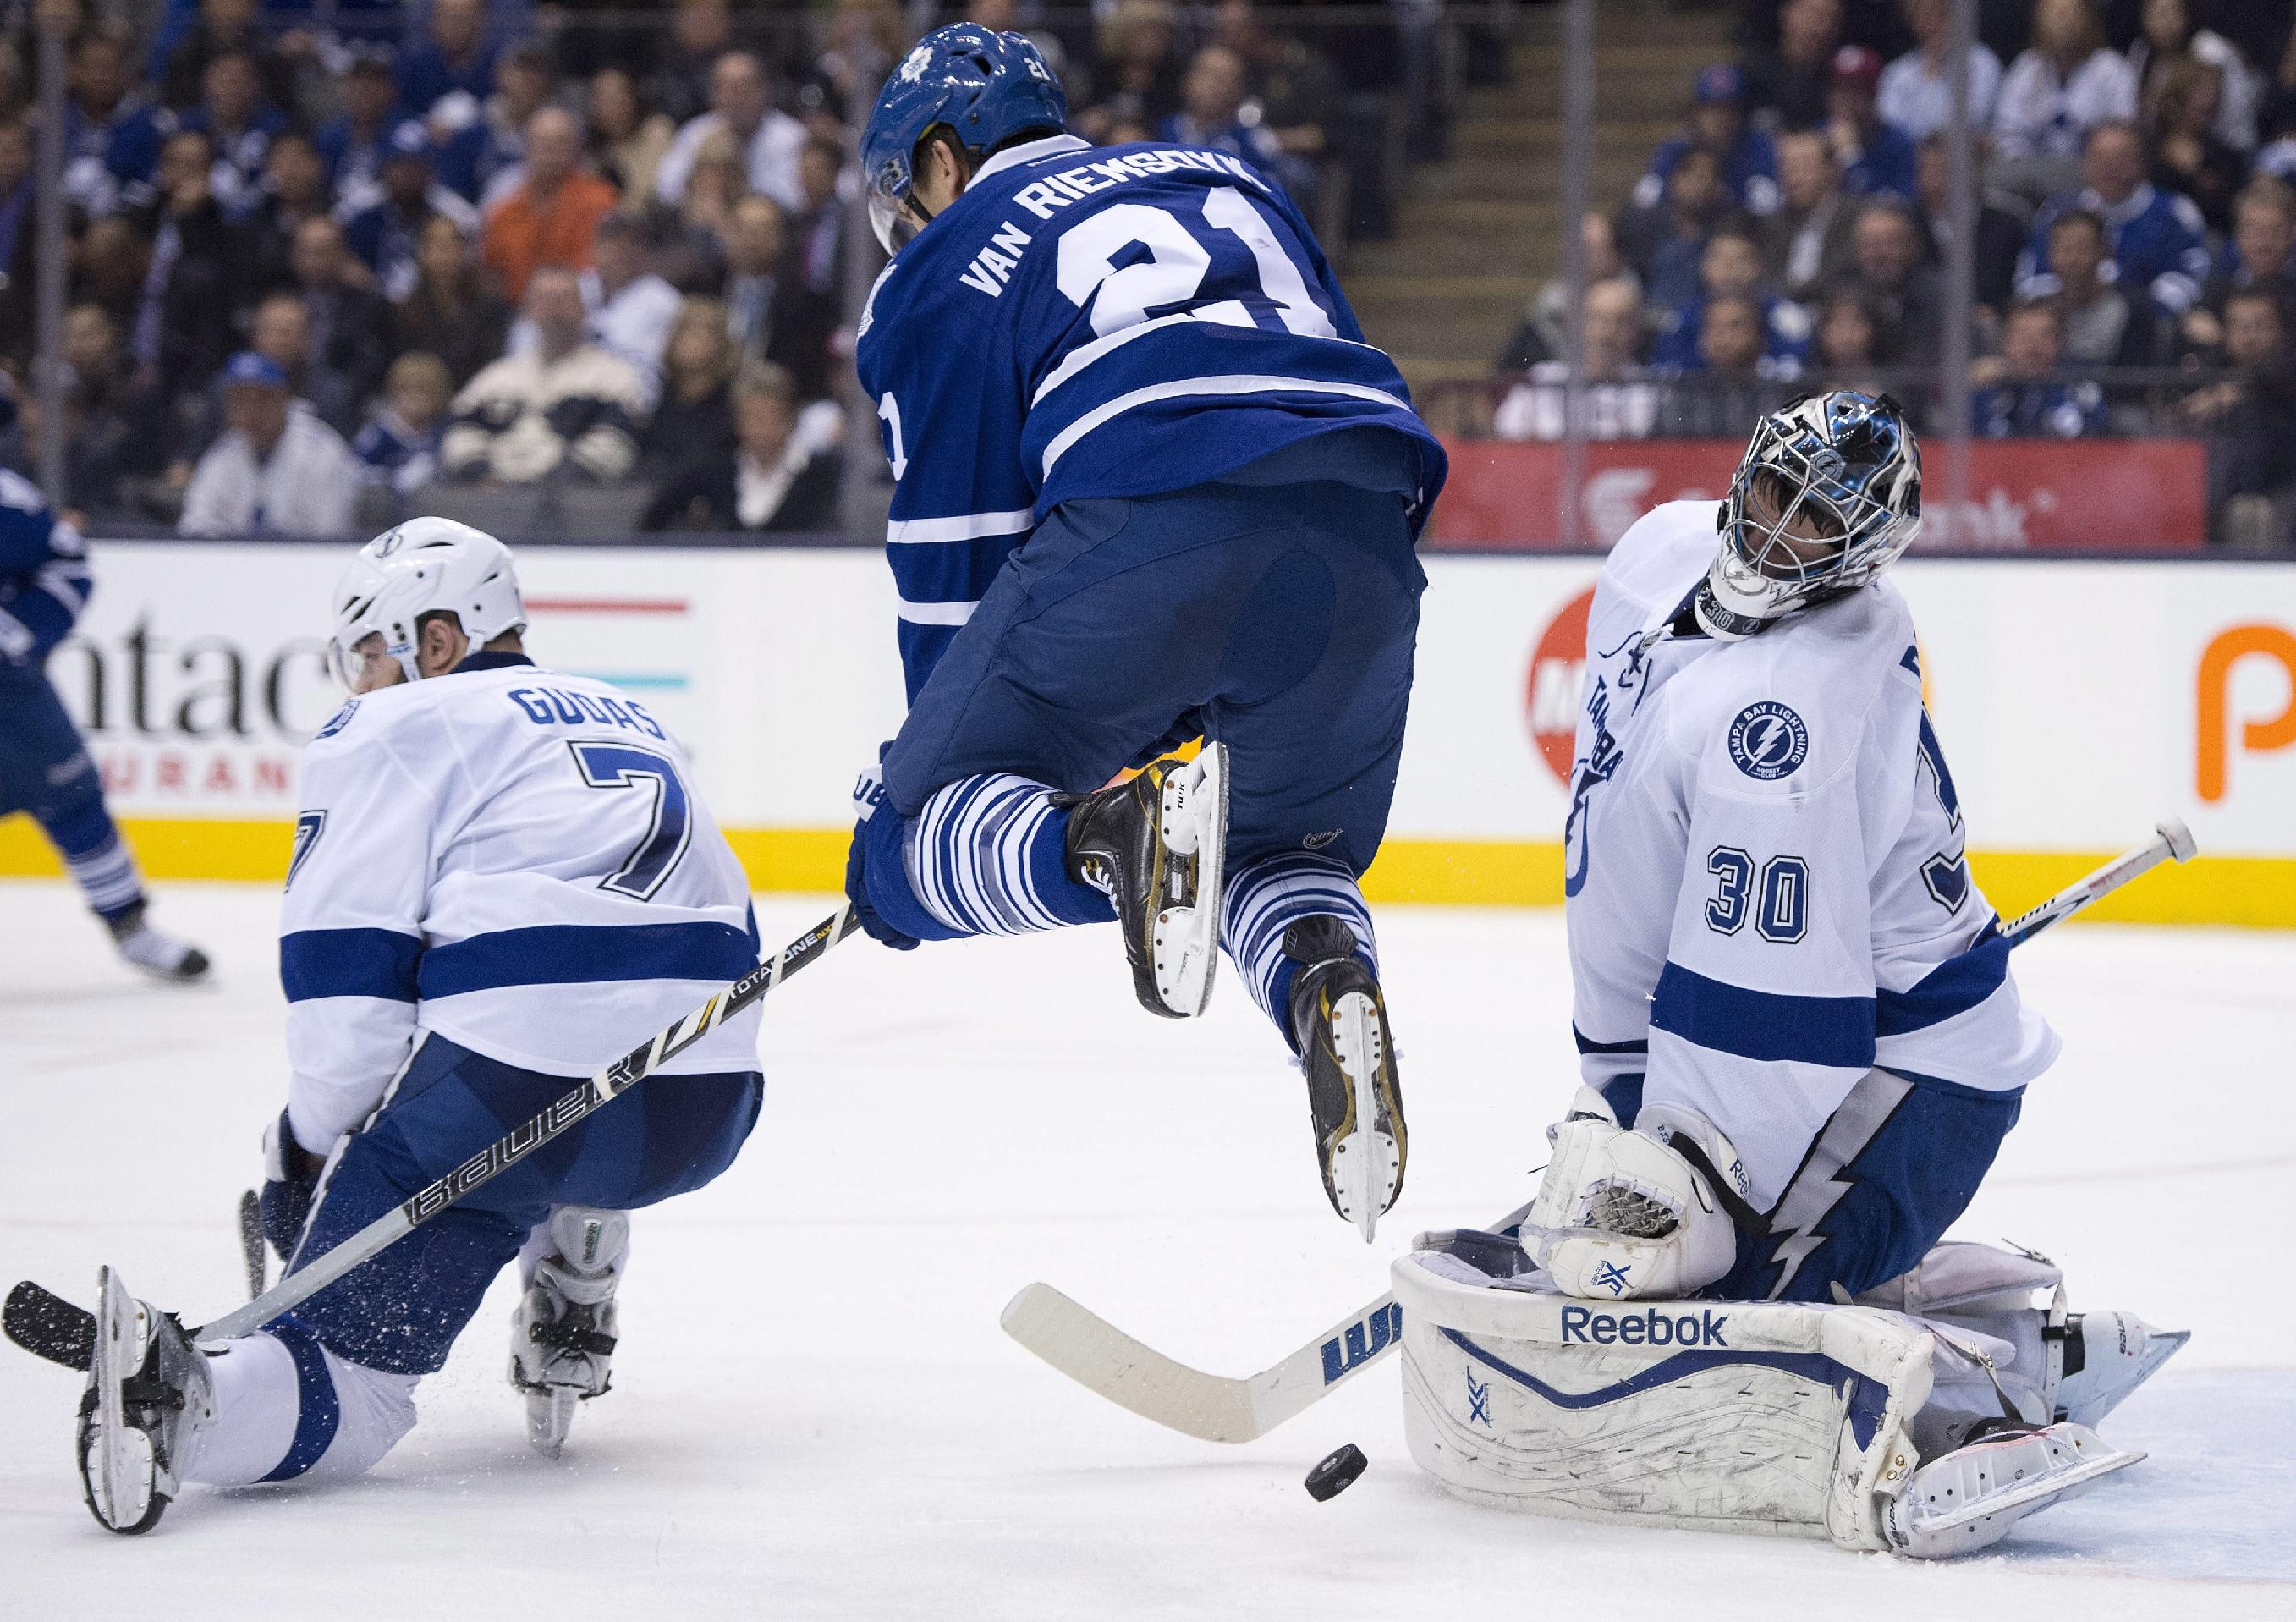 Stamkos' hat trick leads Lightning past Leafs 5-3